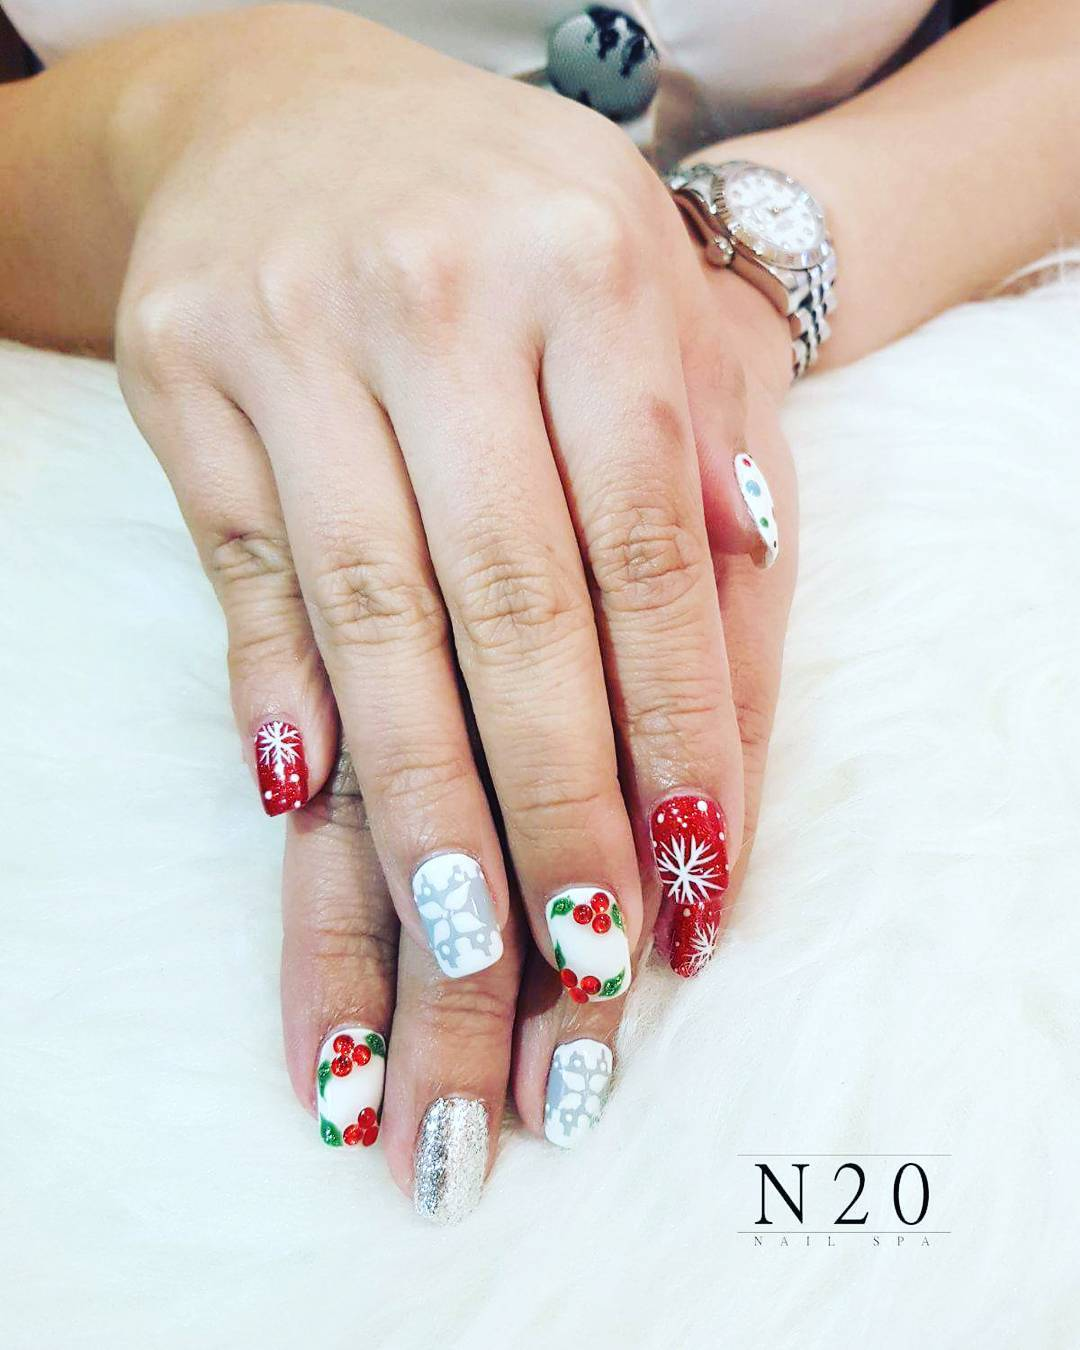 Red white Christmas manicure nail art - N20 Nail Spa